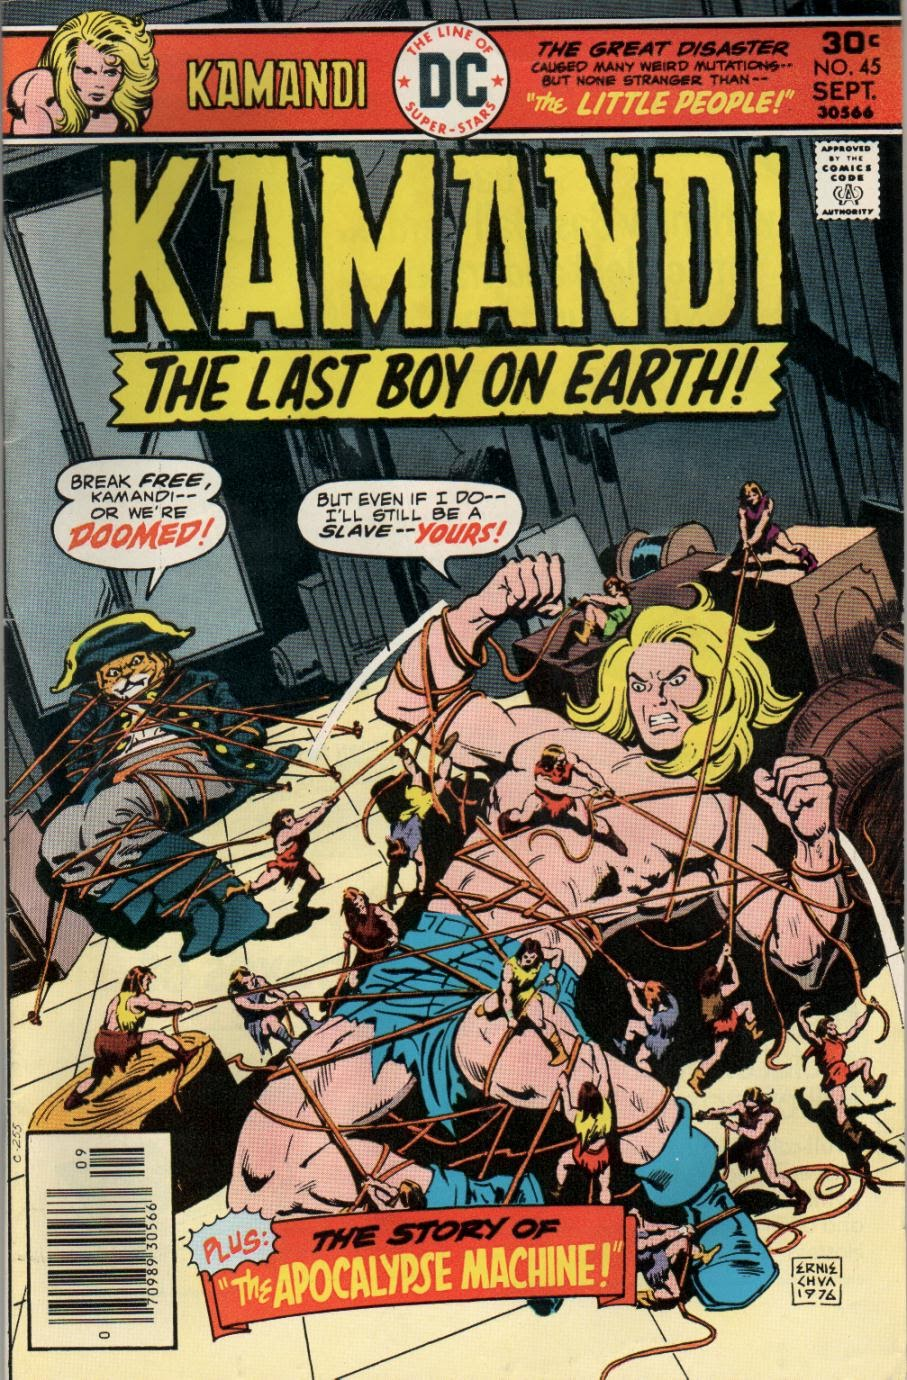 Kamandi, The Last Boy On Earth issue 45 - Page 1